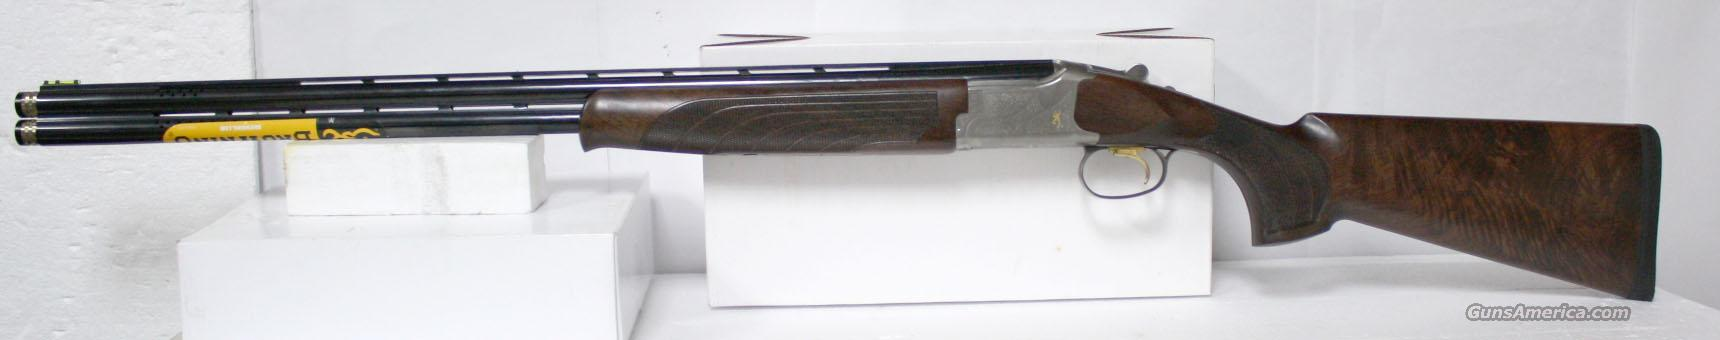 "BROWNING CITORI 625 SPORTING 20 GA 28"" PORTED INV + NEW IN BOX  Guns > Shotguns > Browning Shotguns > Over Unders > Citori > Trap/Skeet"